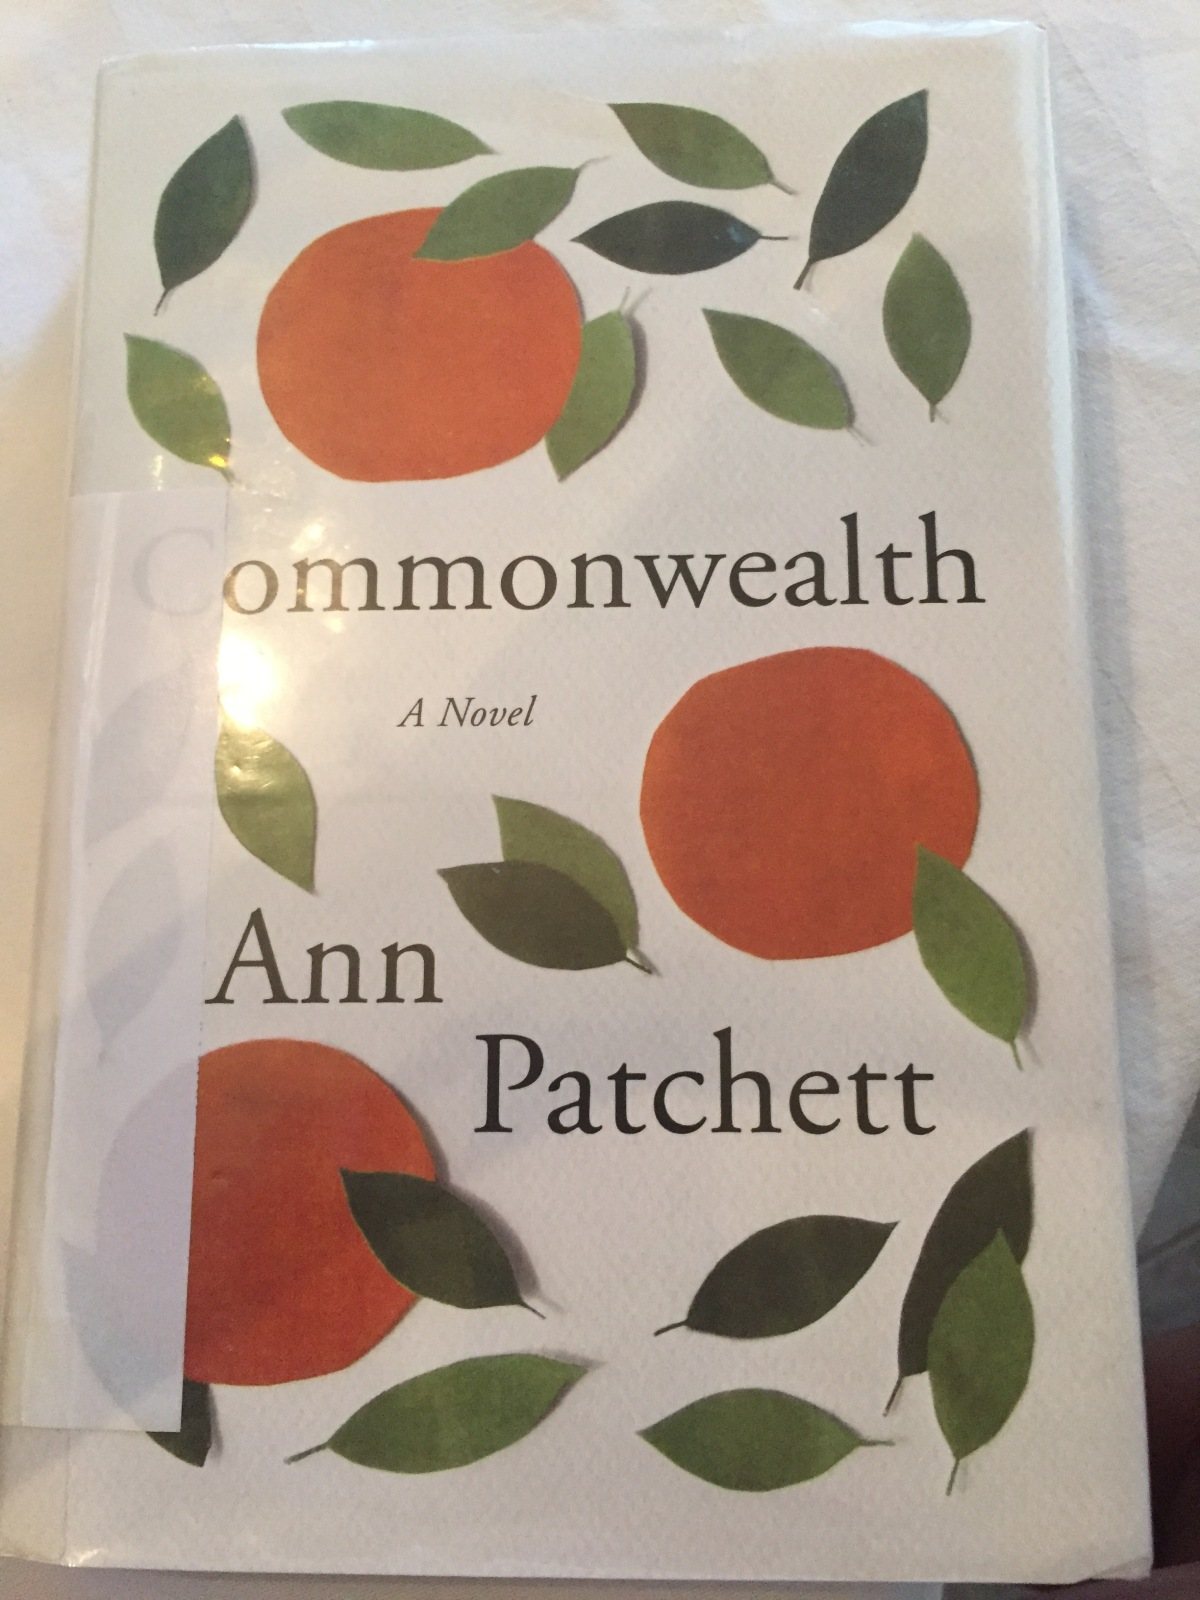 Beach House Book #7 – Commonwealth by Ann Patchett